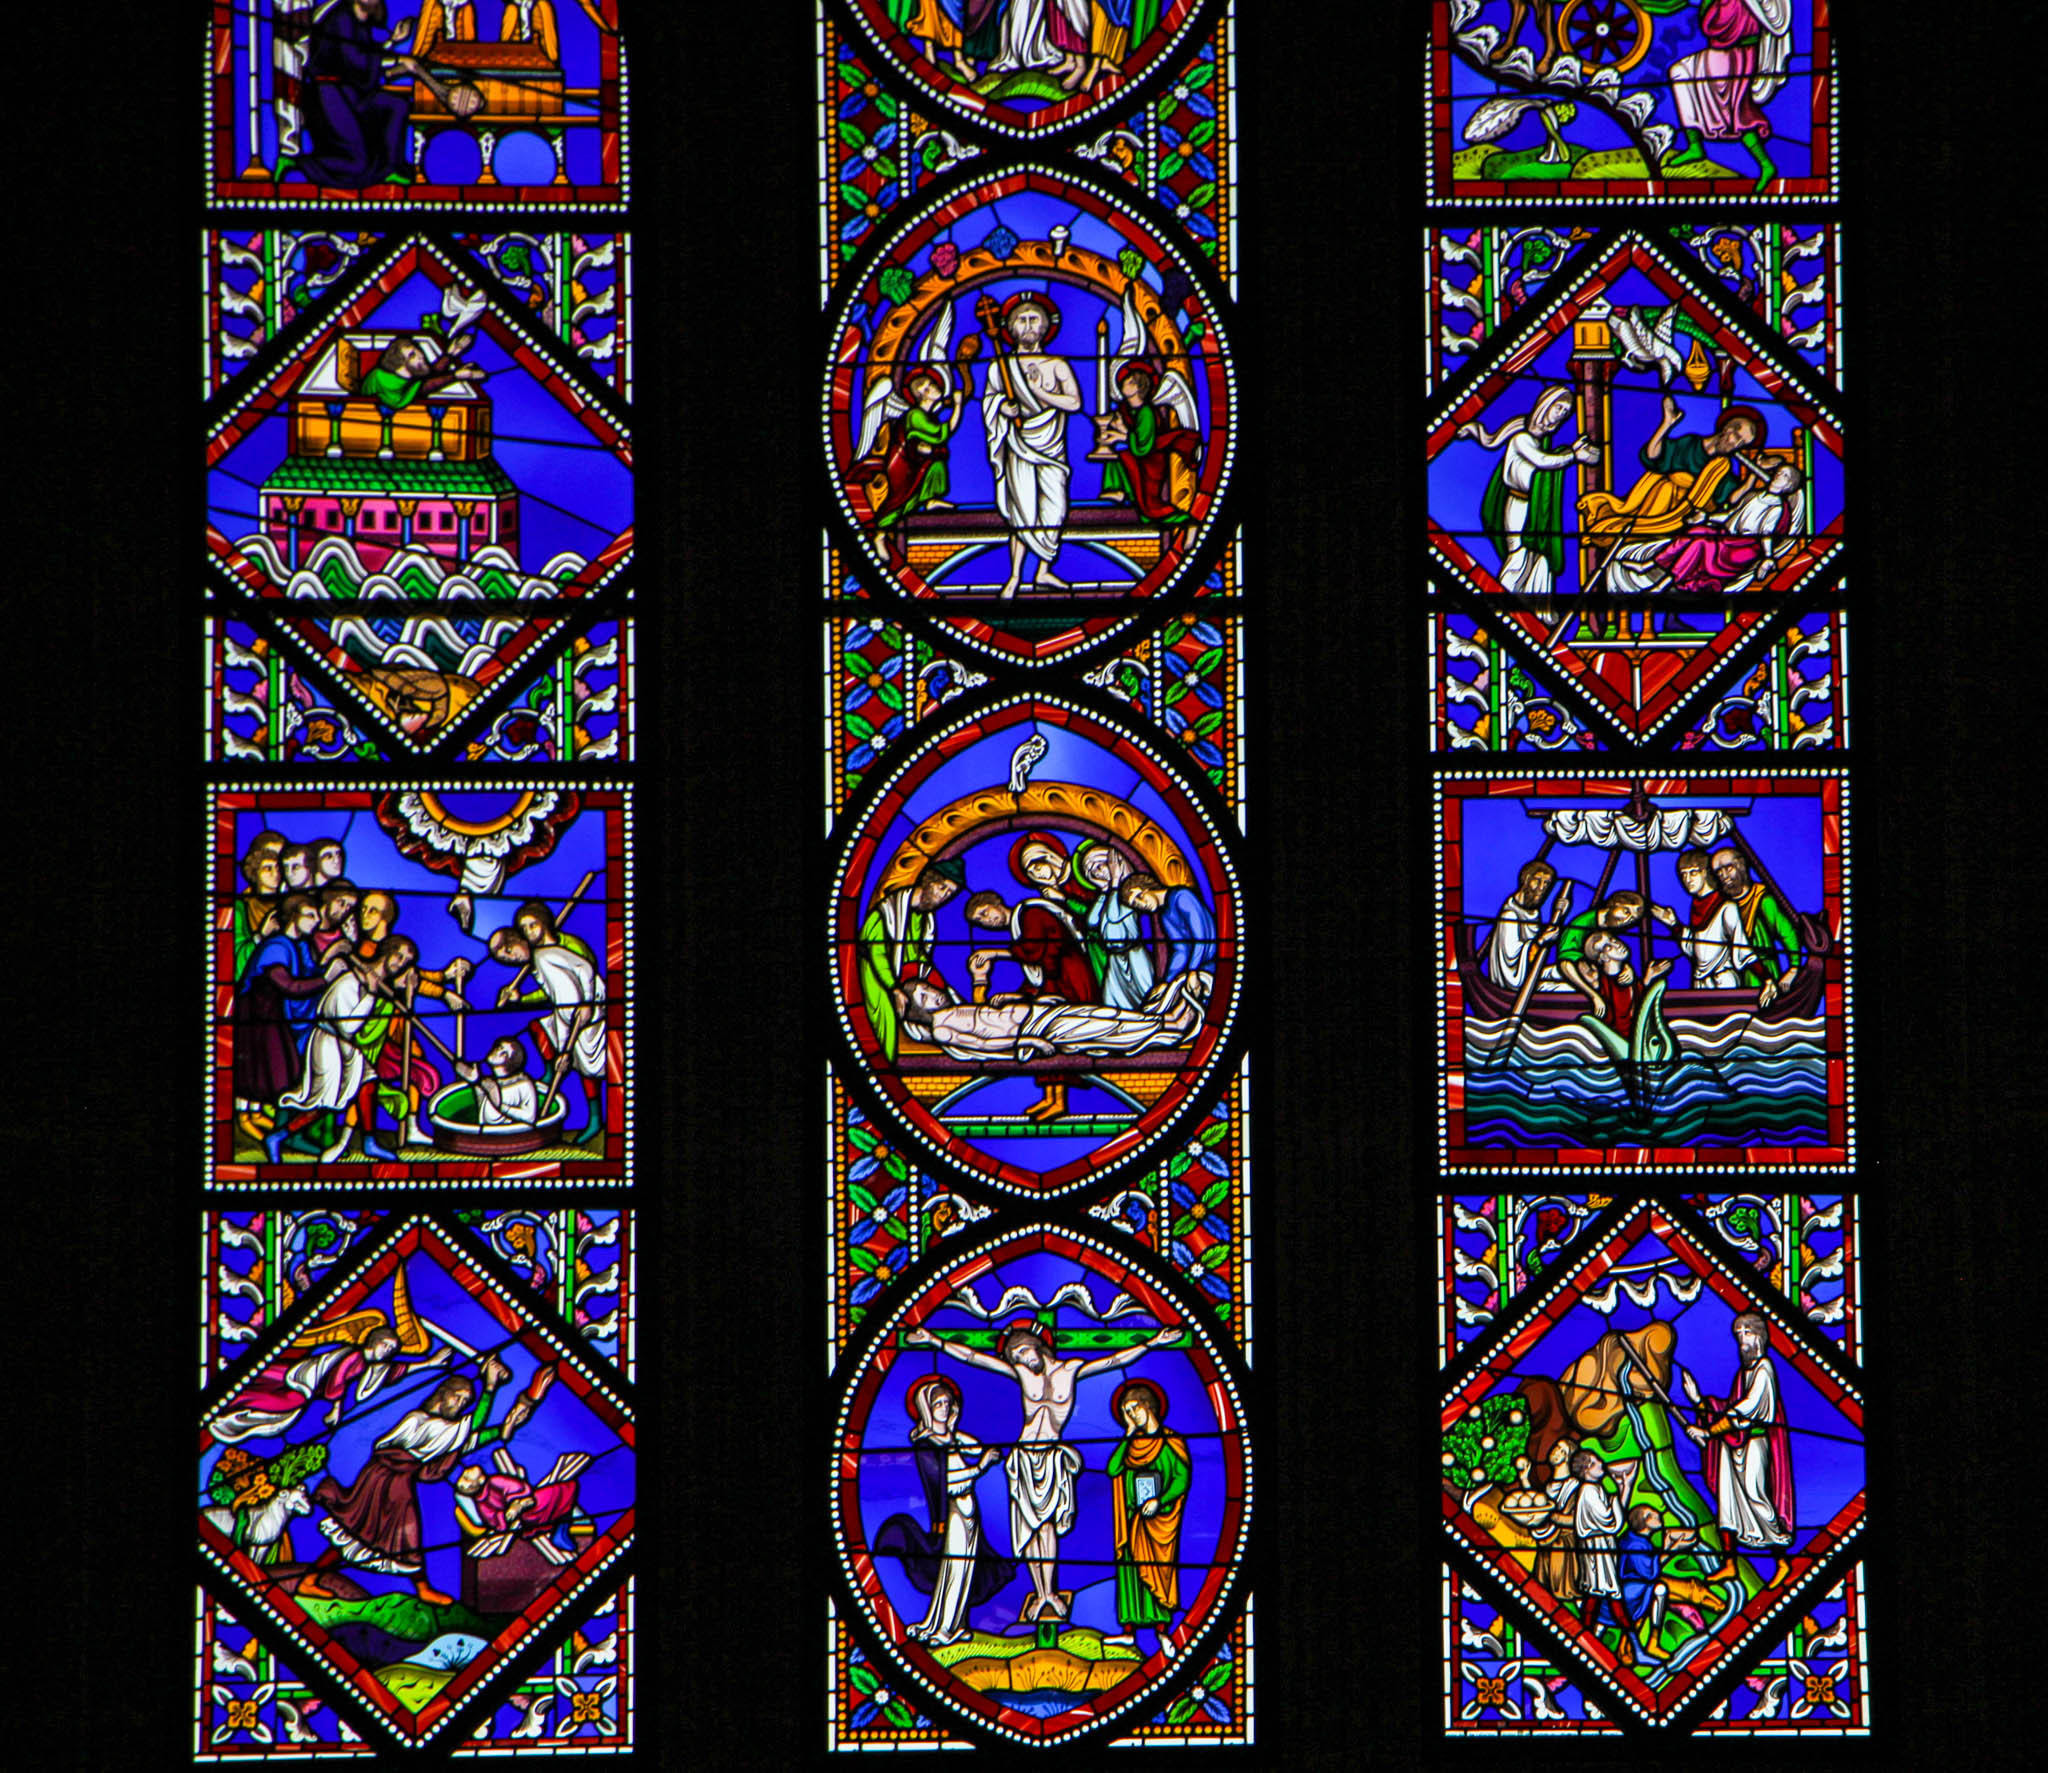 Here Are 5 Fascinating Things About The New Stained Glass Window At